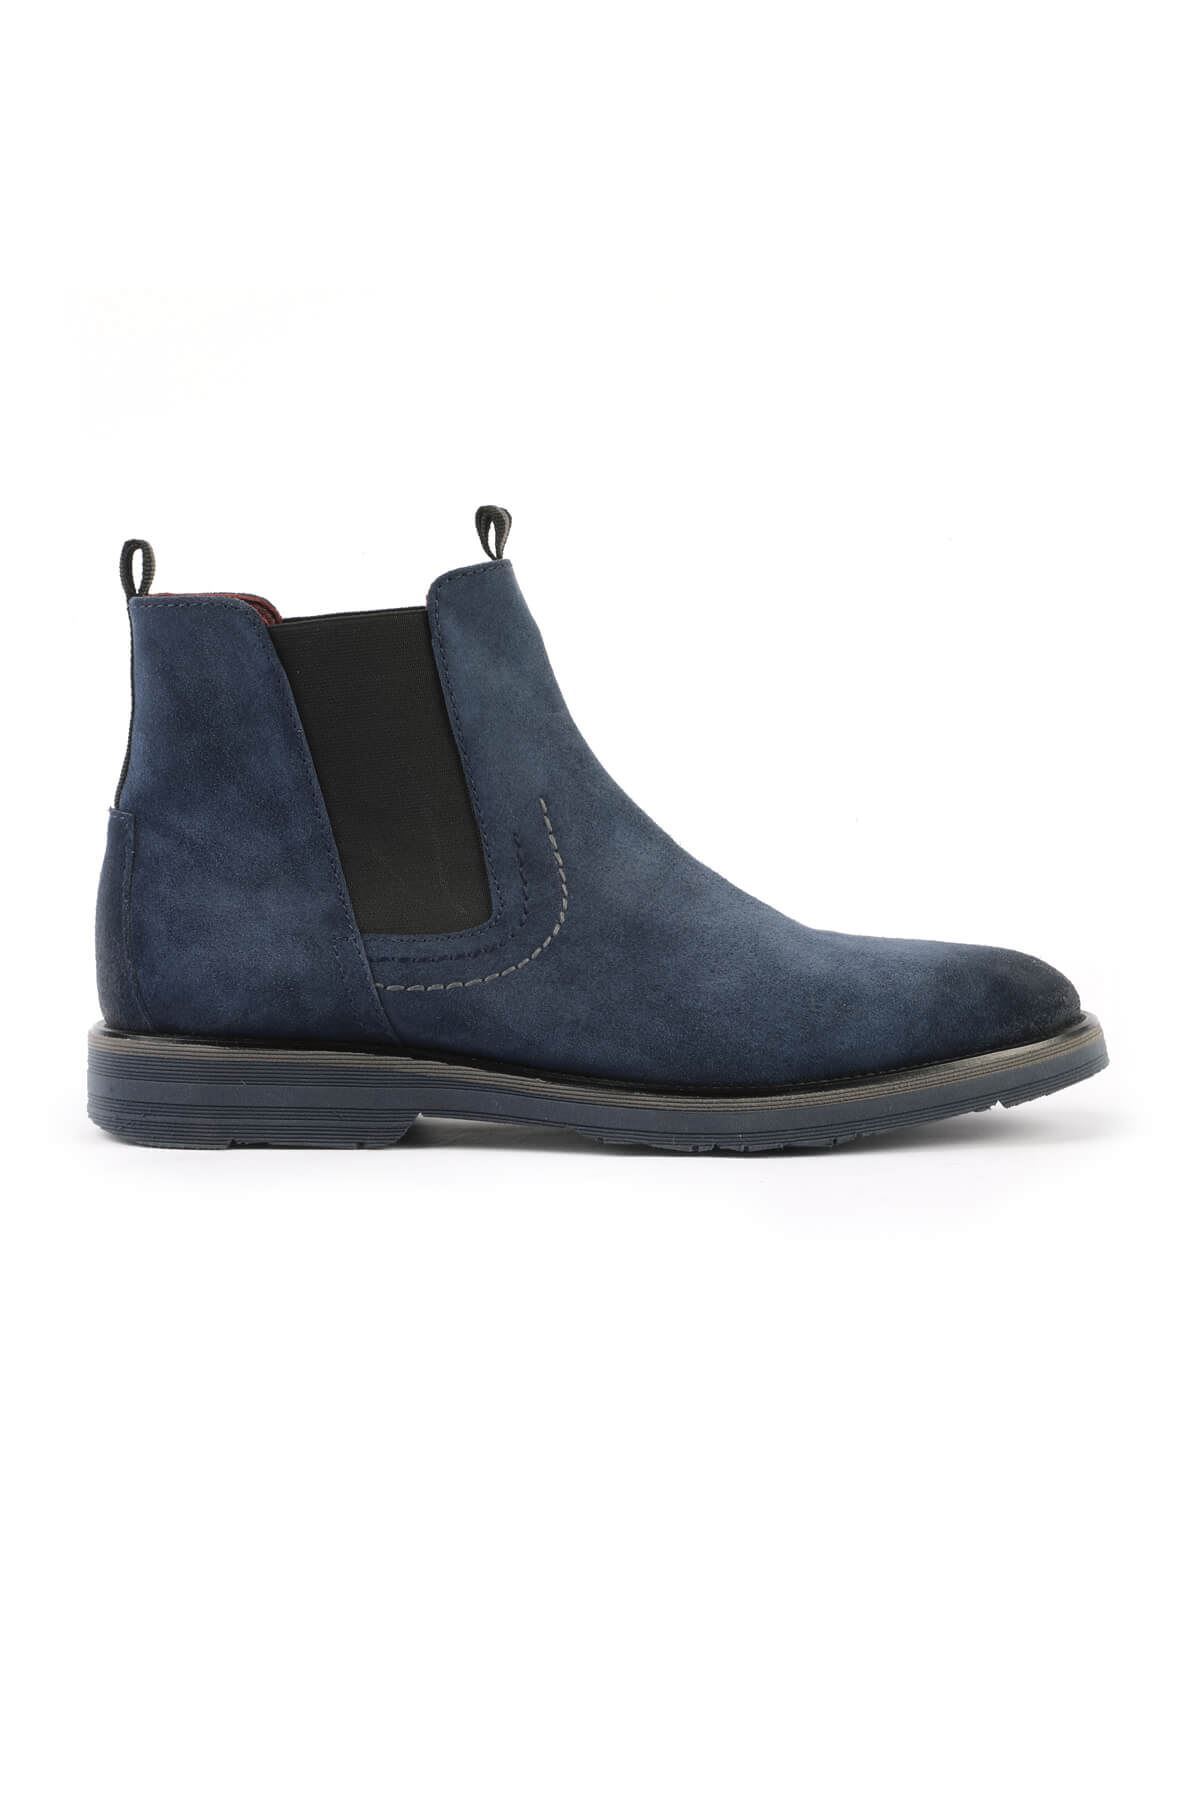 Libero 1319 Navy Blue Men's Boots